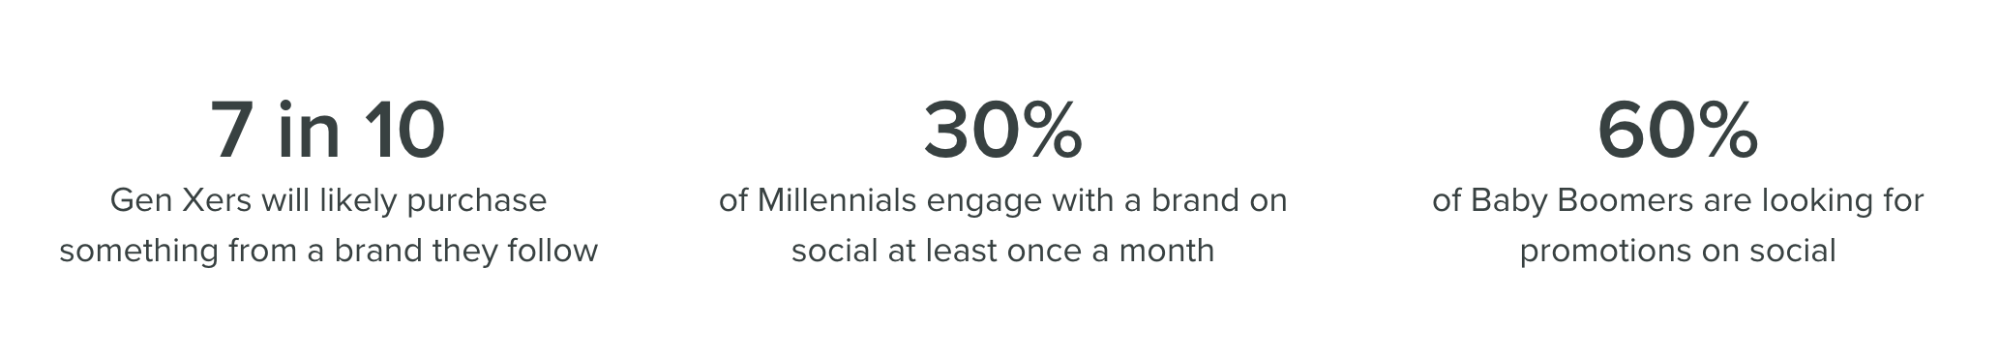 social media stats by demographic